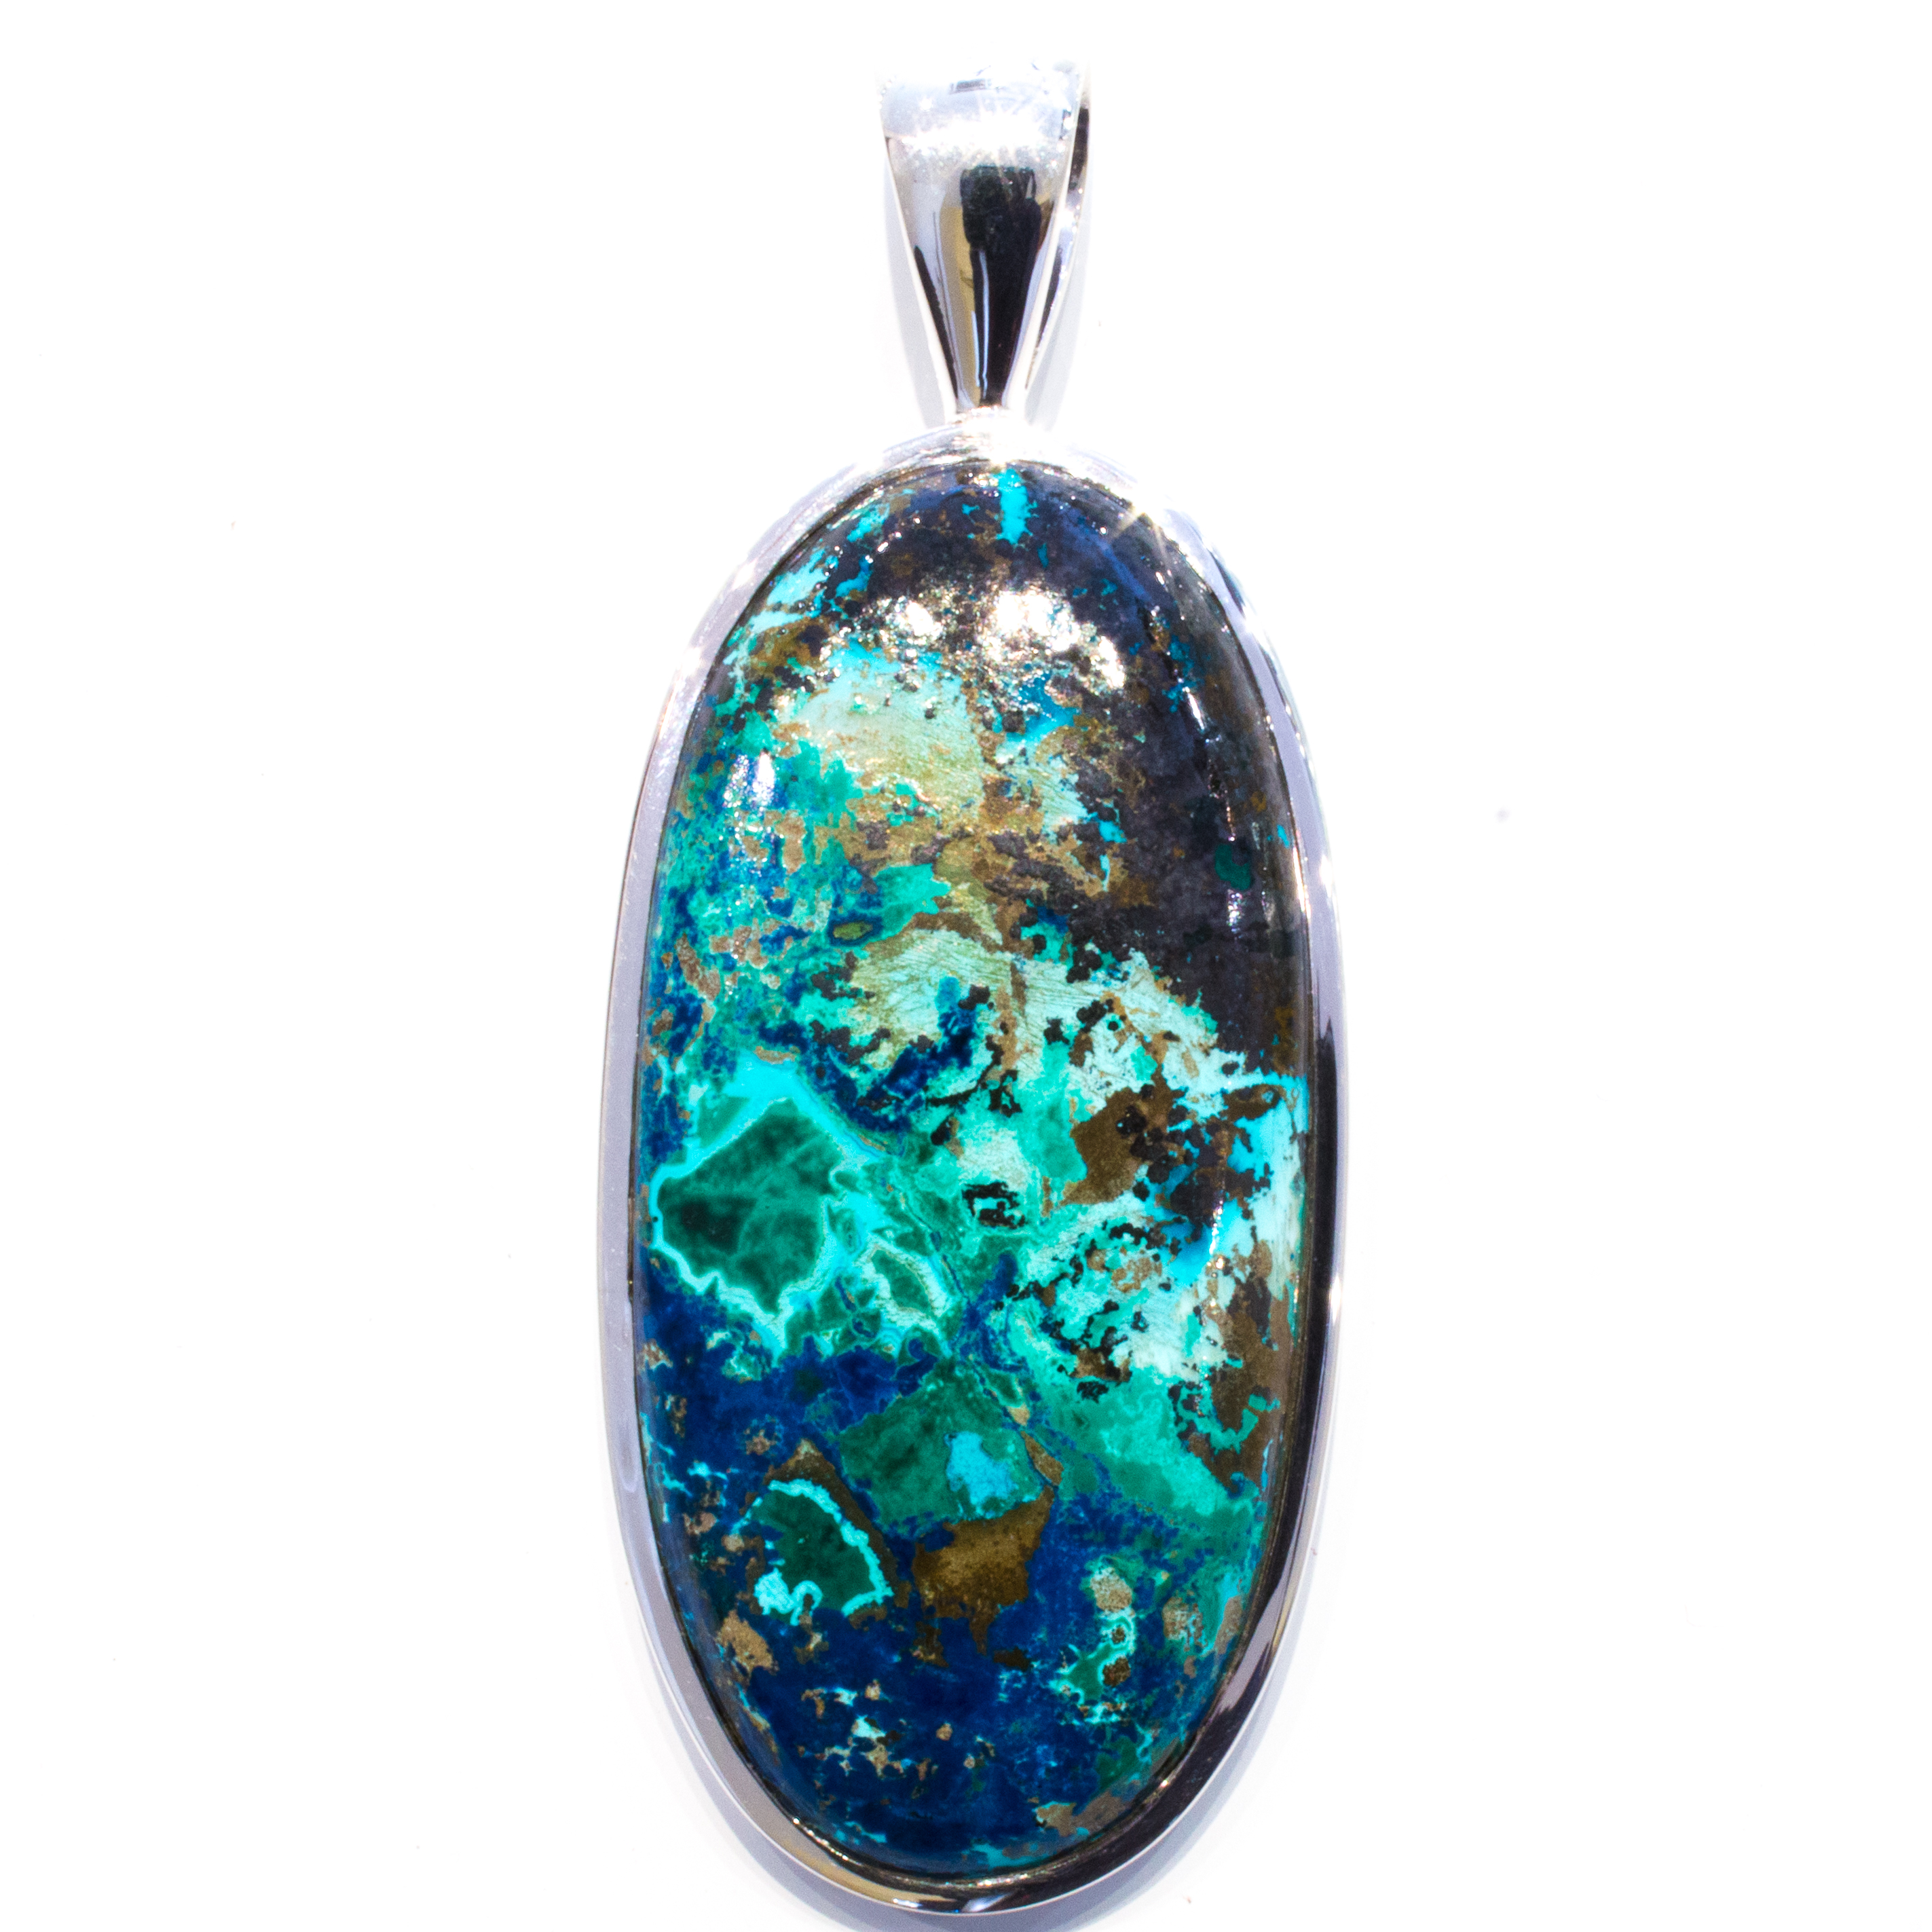 Handmade Sterling Silver Pendant with Chrysocolla Stone